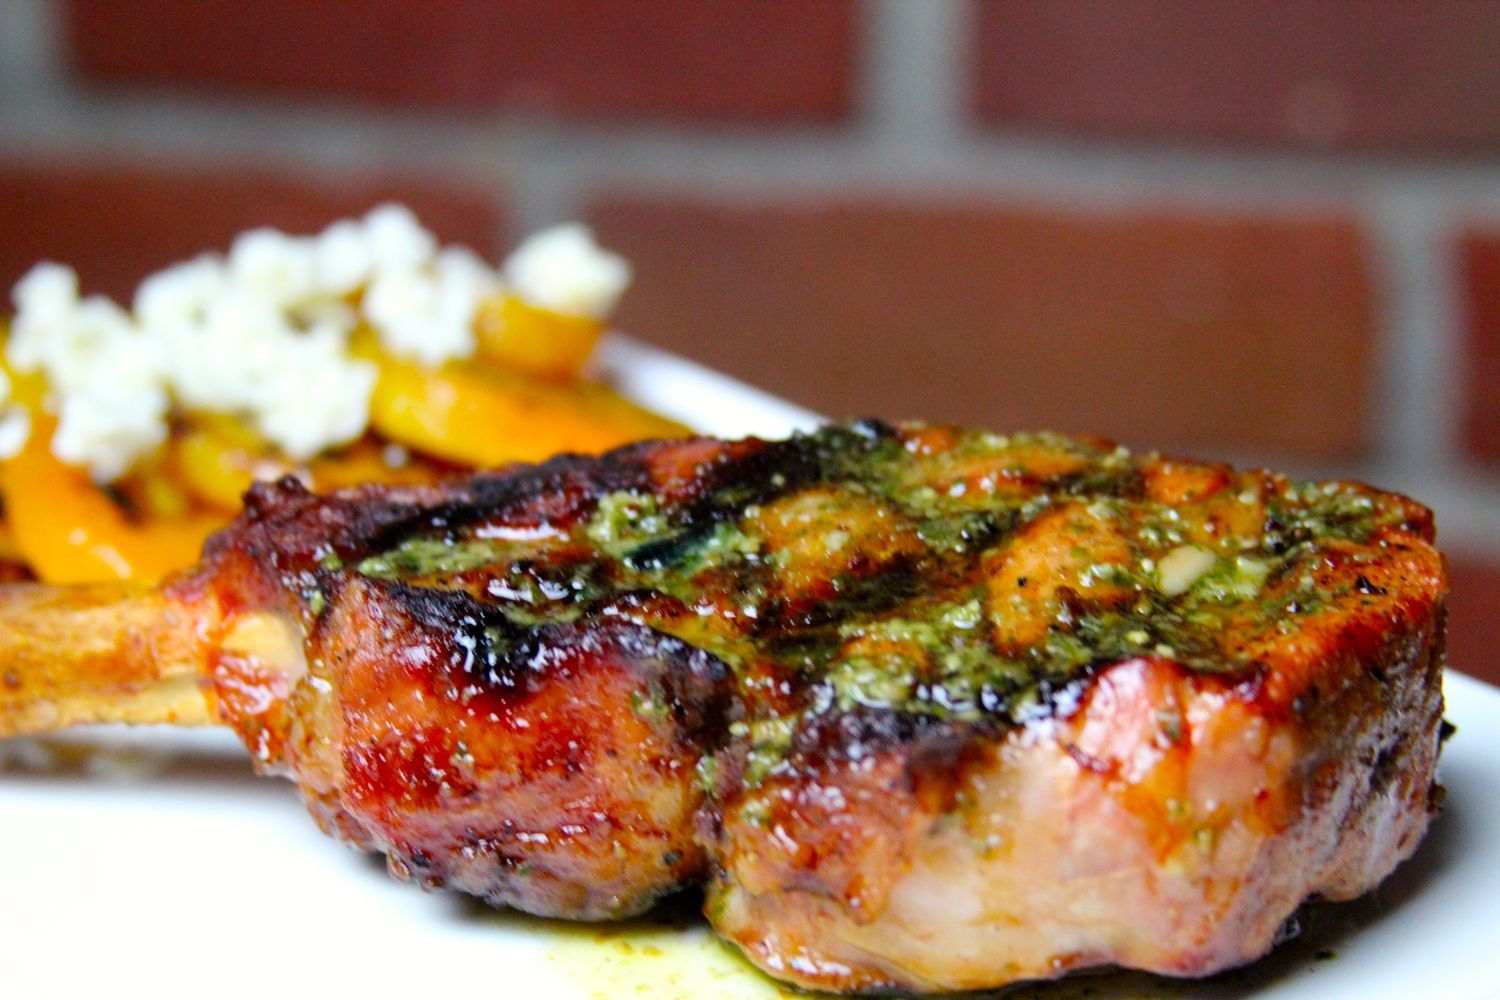 Irresistible Chimichurri Butter Chimichurri Butter Veal Banting Grilling Grilled Veal Chop 2018 Grilling Veal Chop Recipes Easy Veal Chop Recipes Slow Cooker Grilled Veal Chop